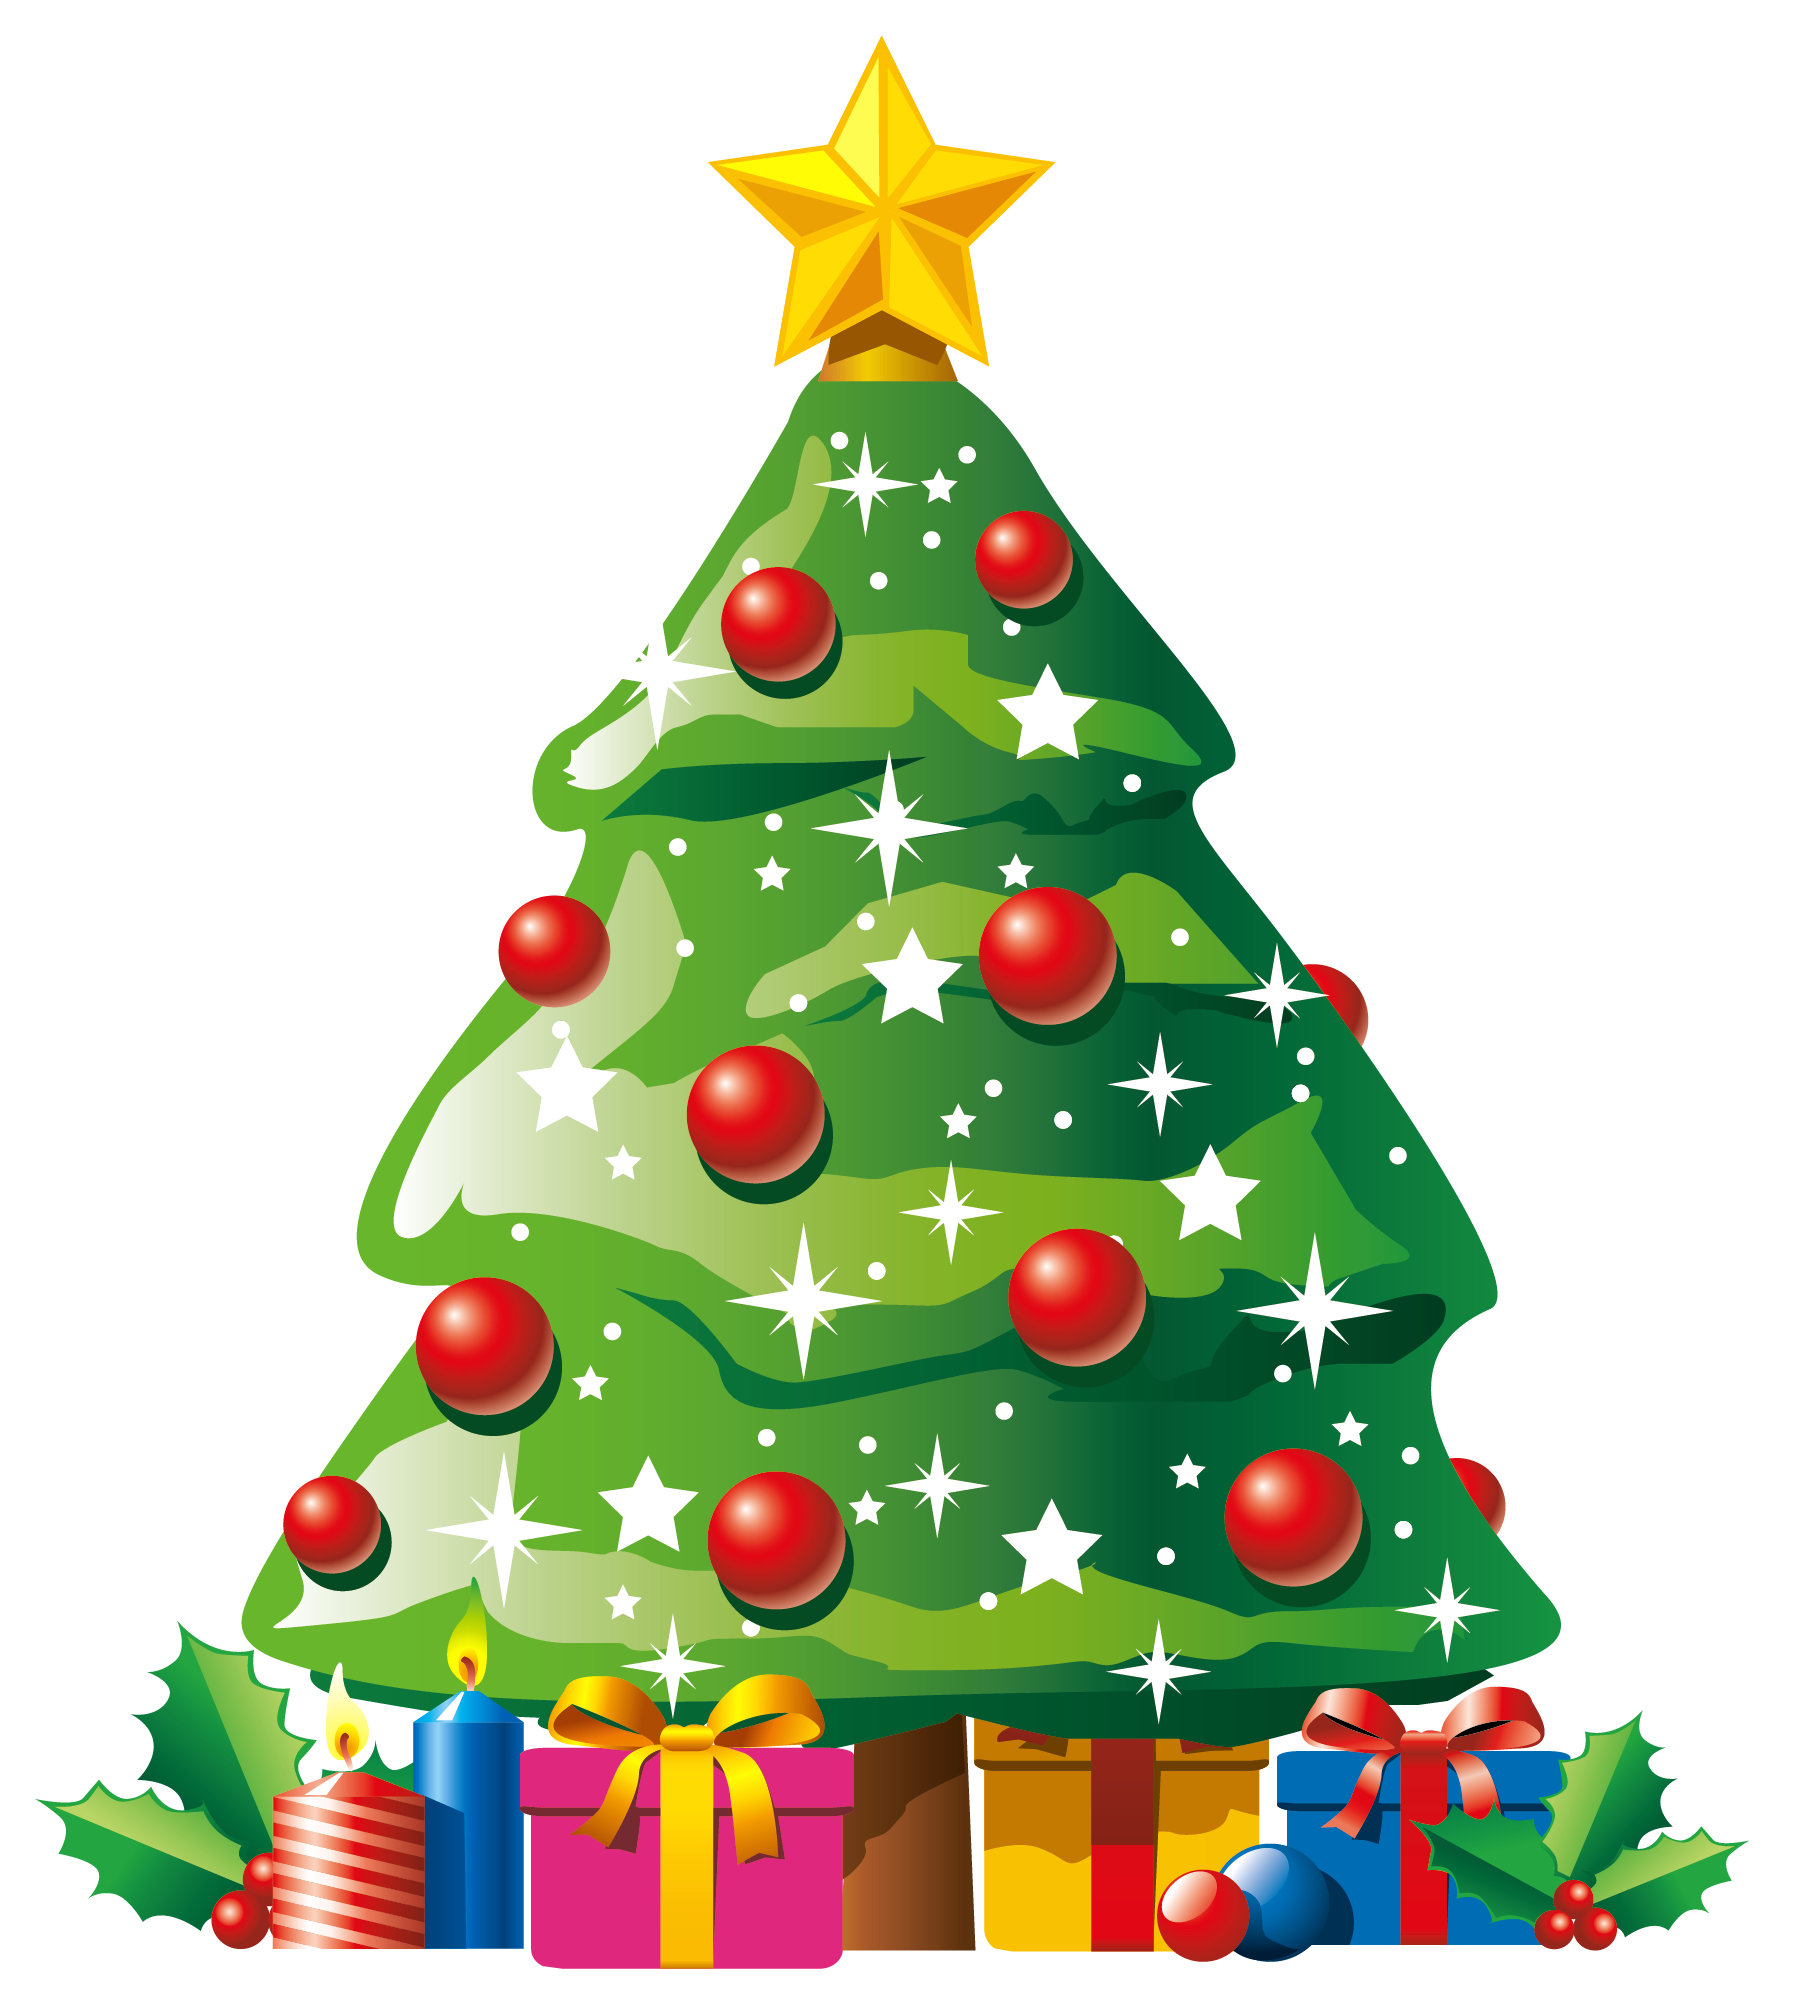 Gifts Clipart Animated Gifts Animated Transparent Free For Download On Webstockreview 2021 Cut, color, and hang them on a christmas tree. gifts clipart animated gifts animated